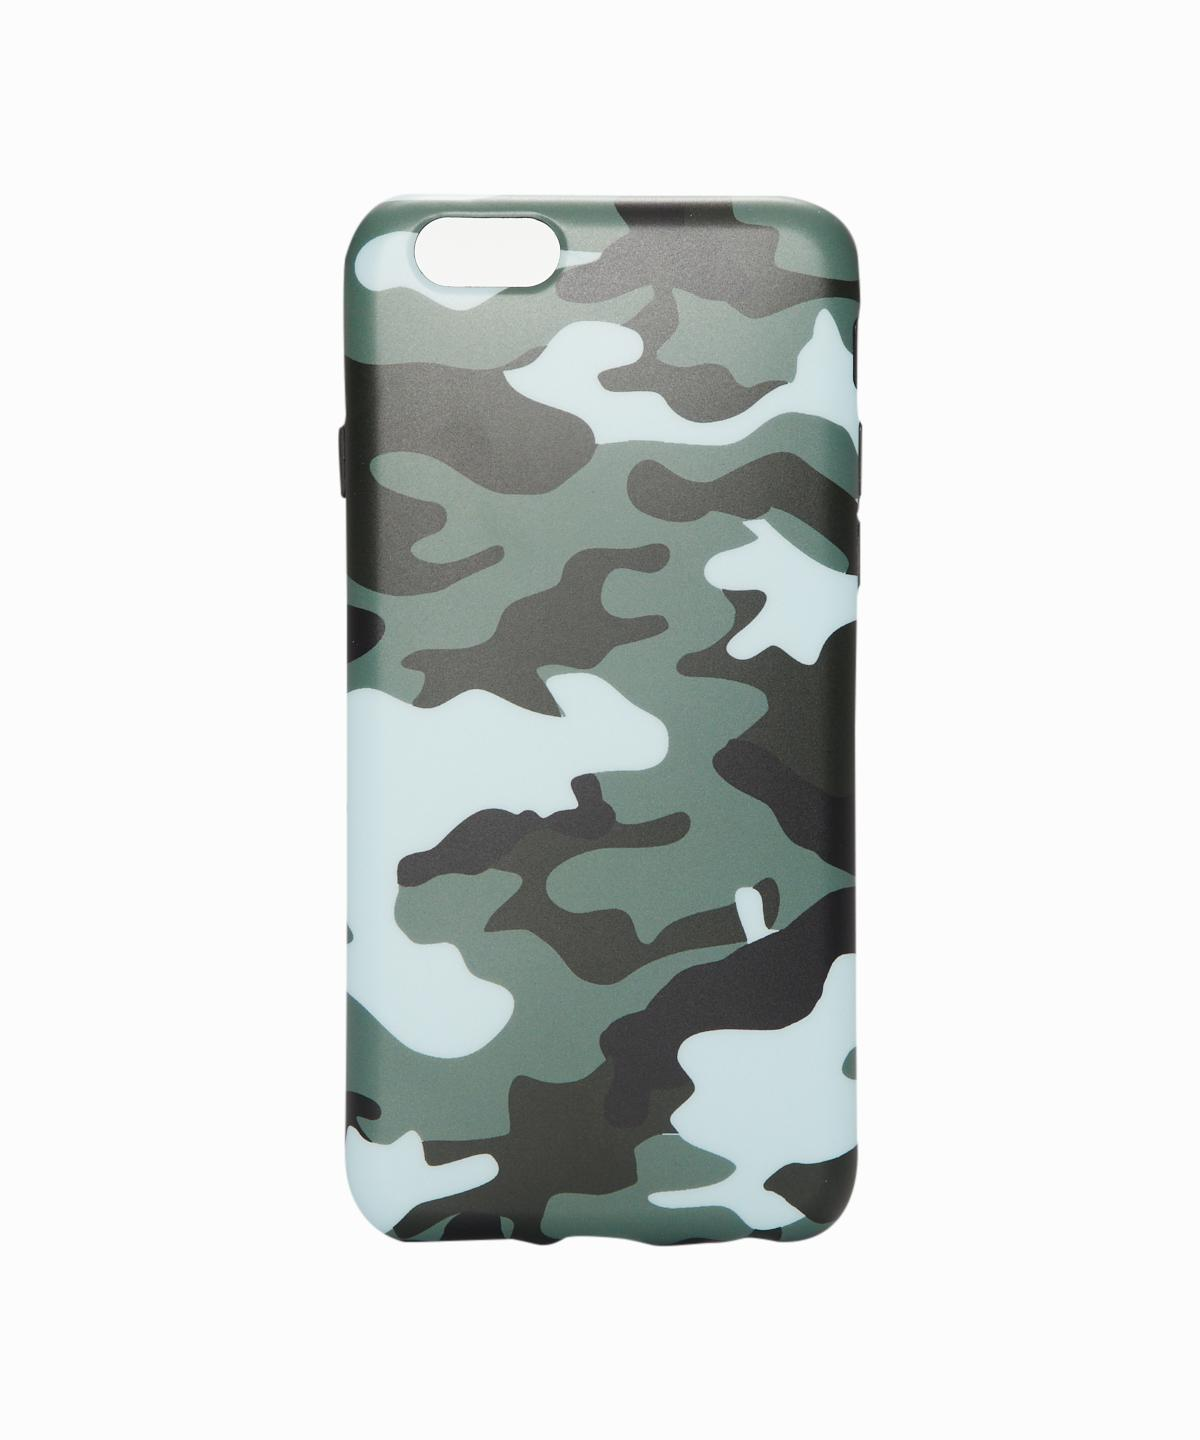 Green Camo iPhone 6 Case